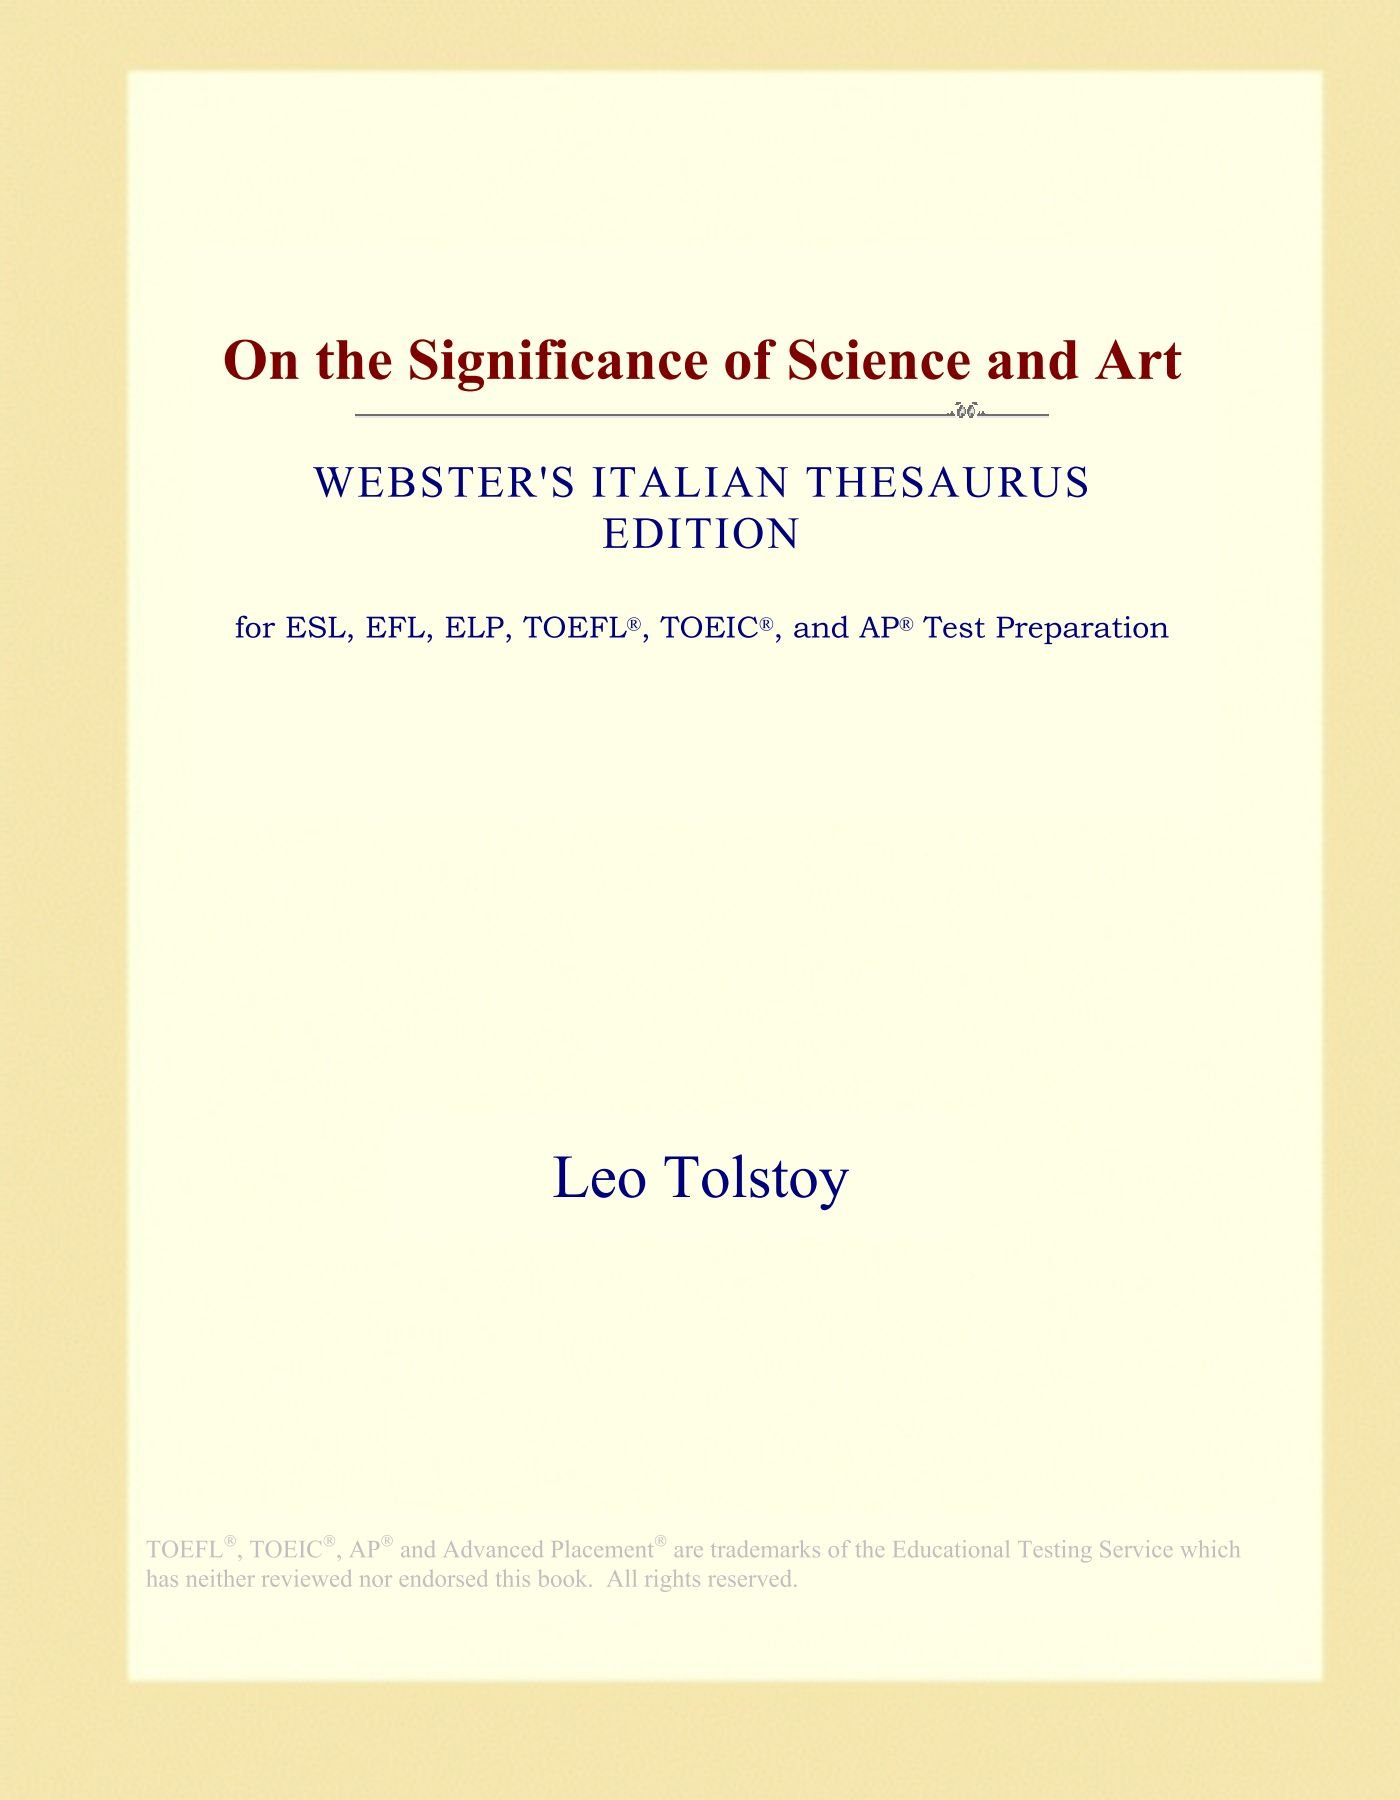 Download On the Significance of Science and Art (Webster's Italian Thesaurus Edition) ebook